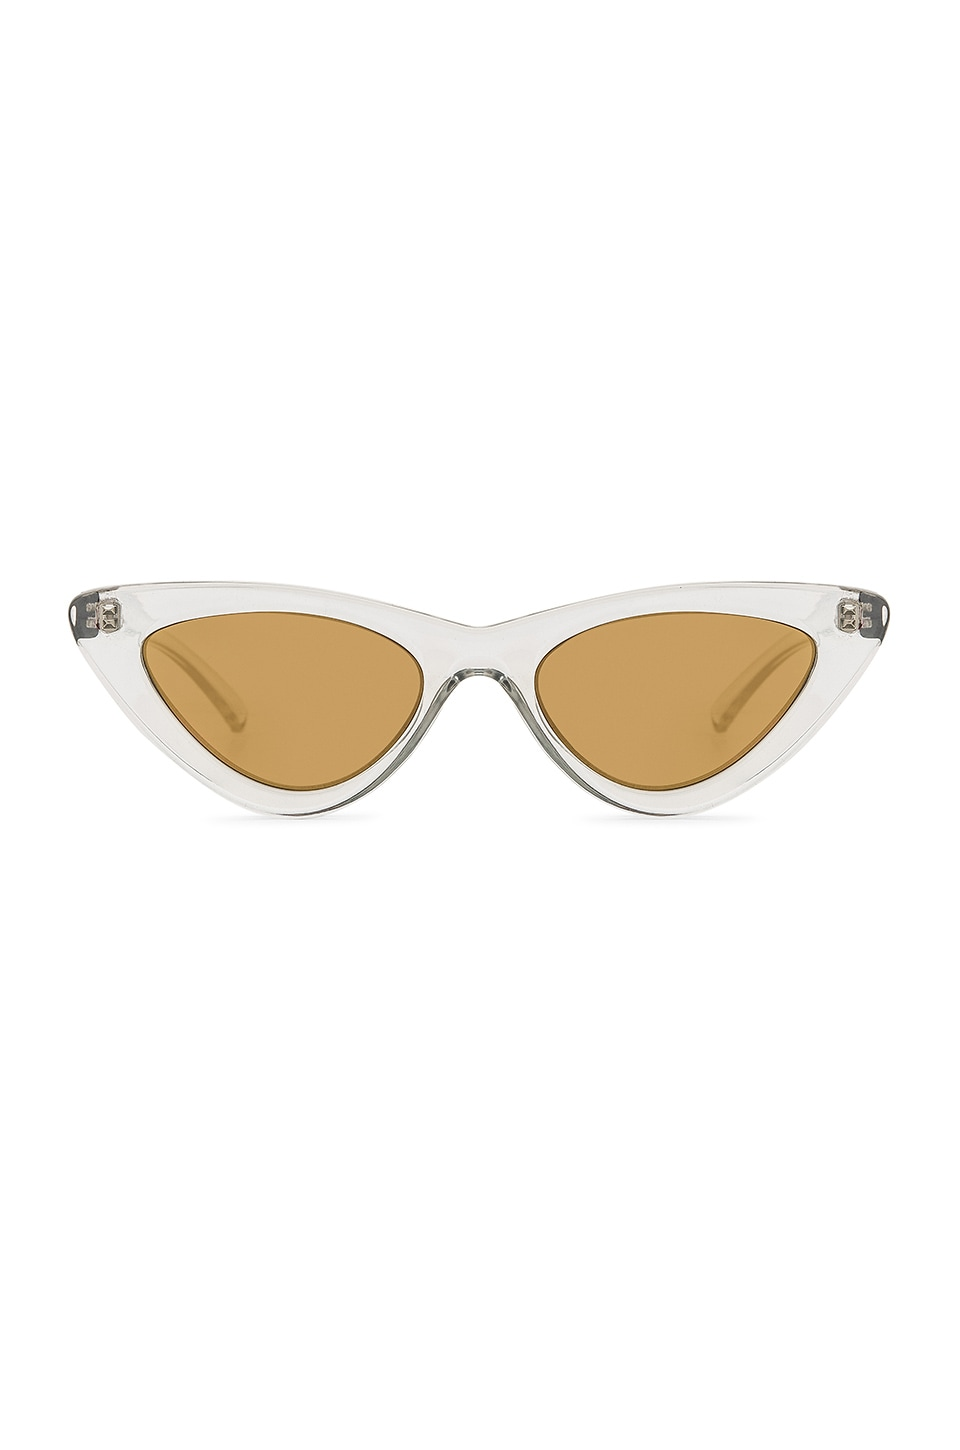 Le Specs x Adam Selman The Last Lolita in Crystal Grey & Brass Mirror